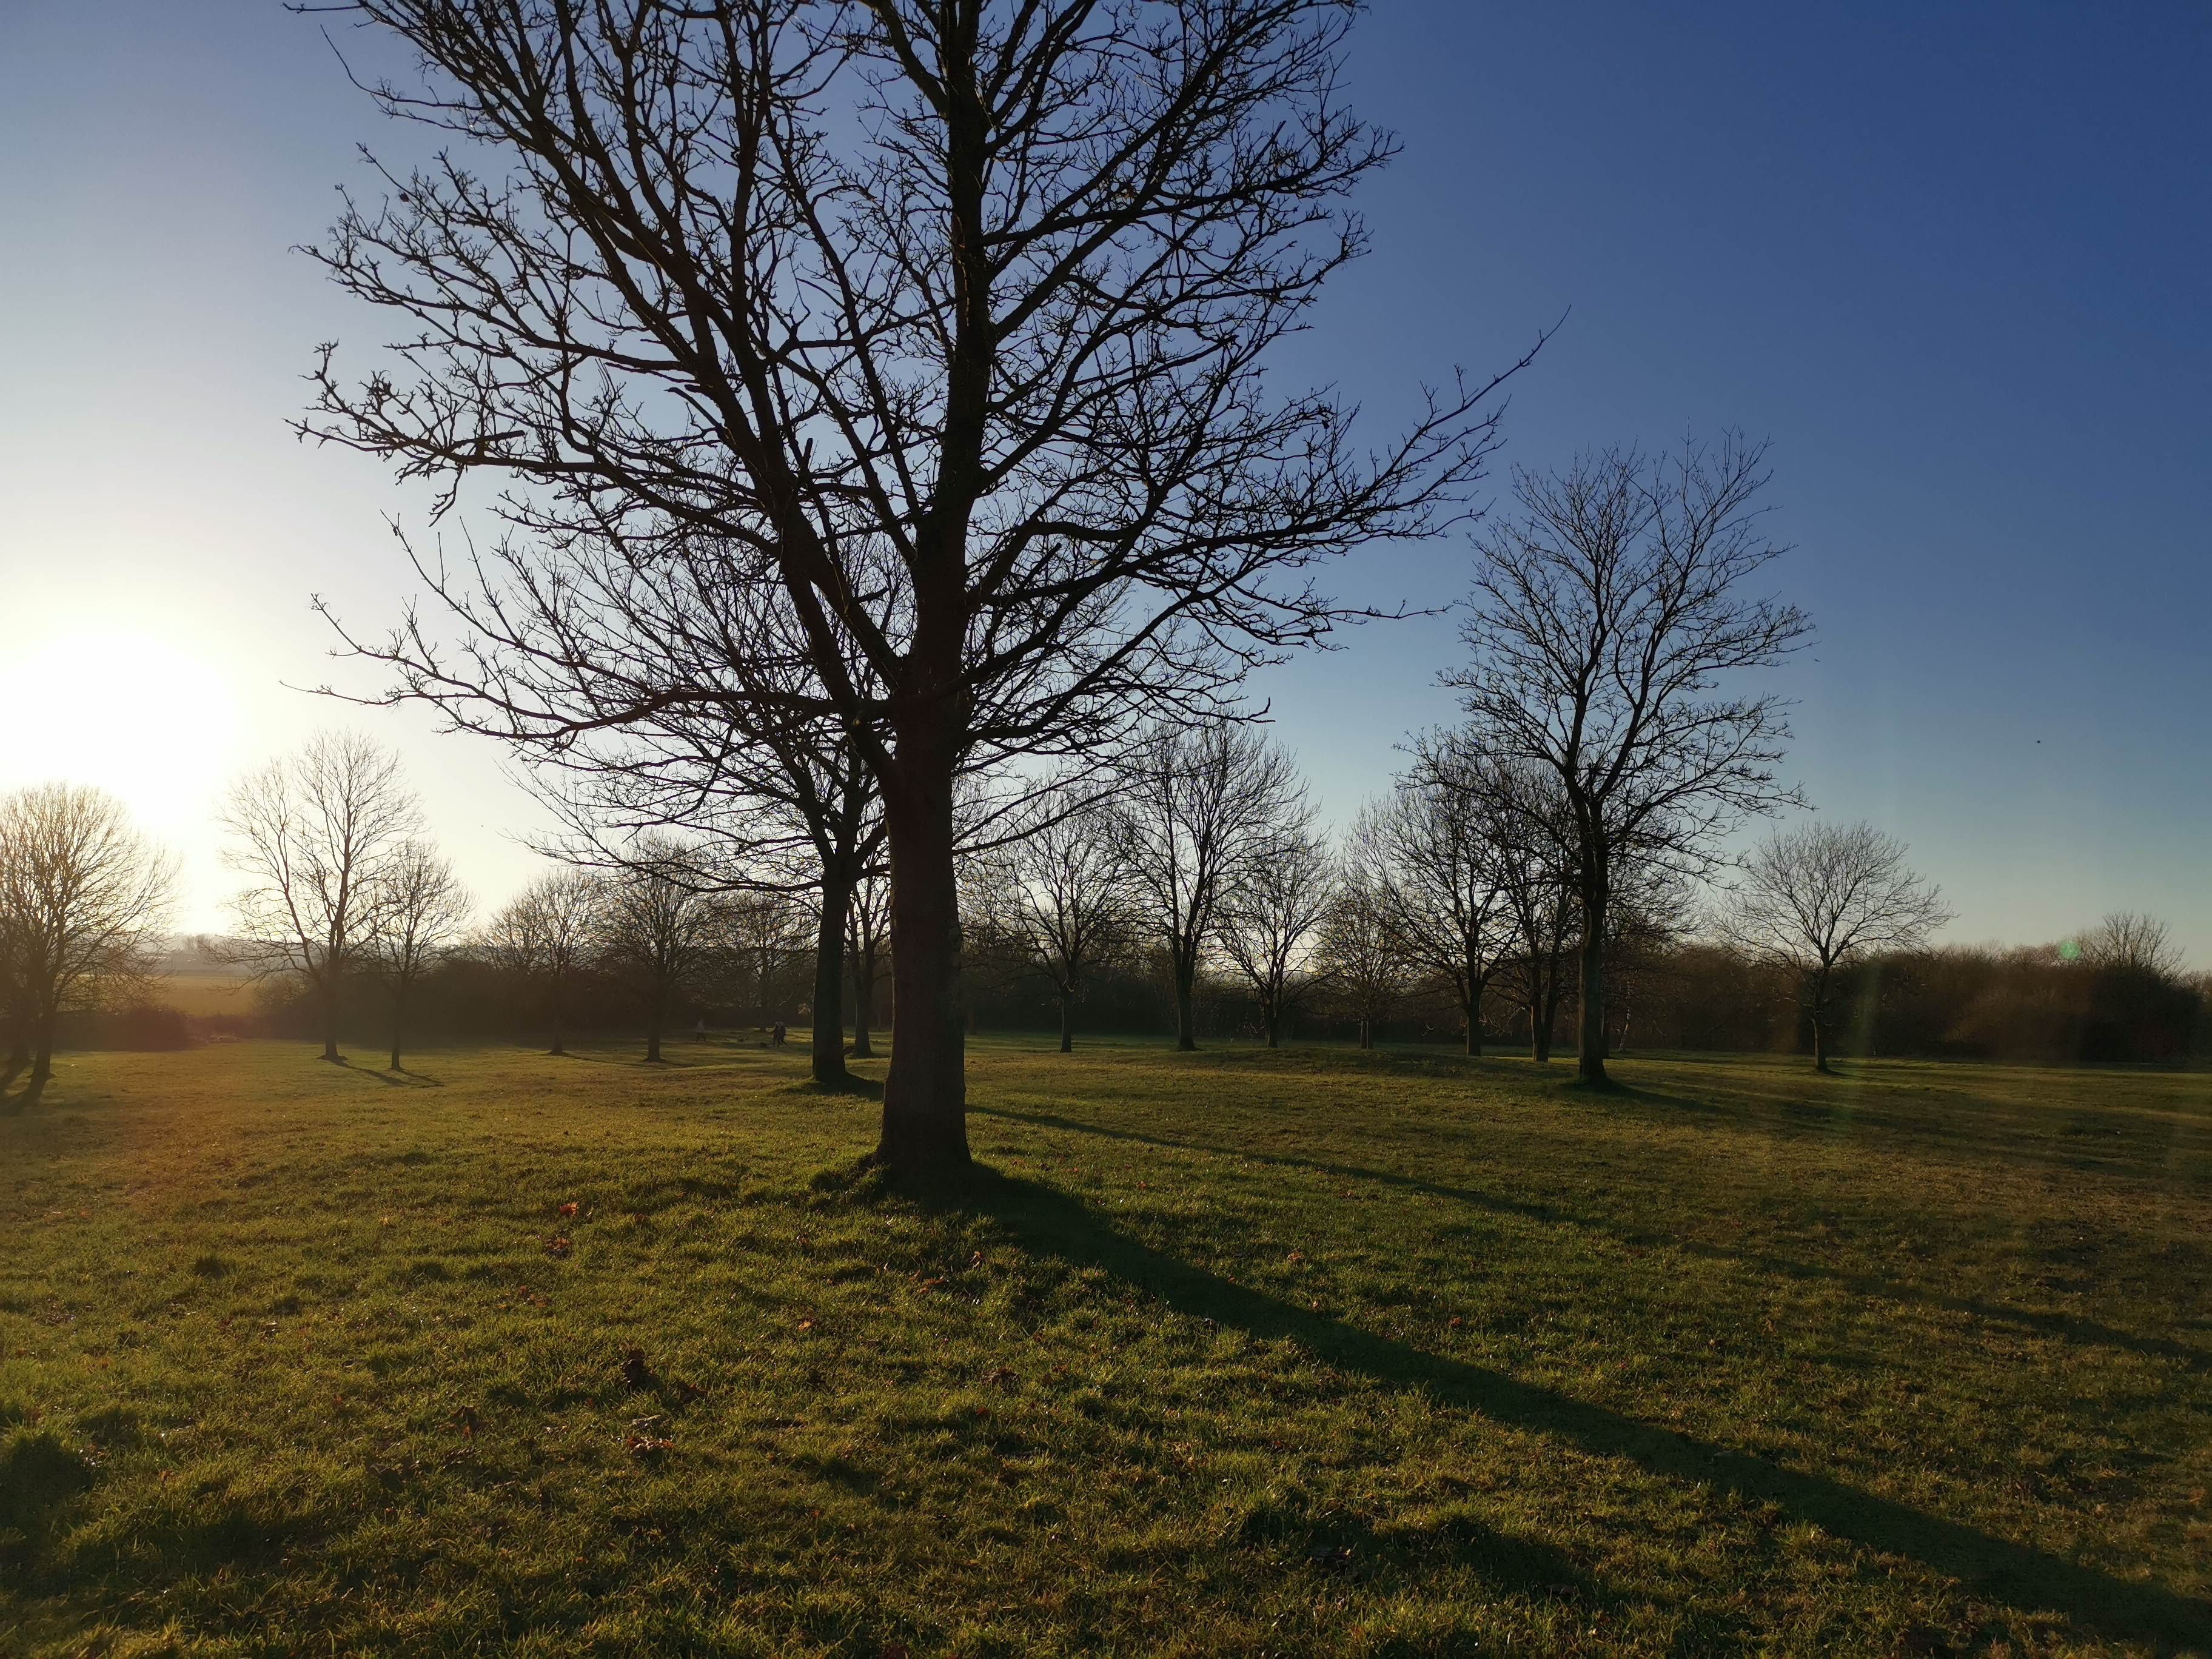 landscape photo with trees, blue sky and green grass